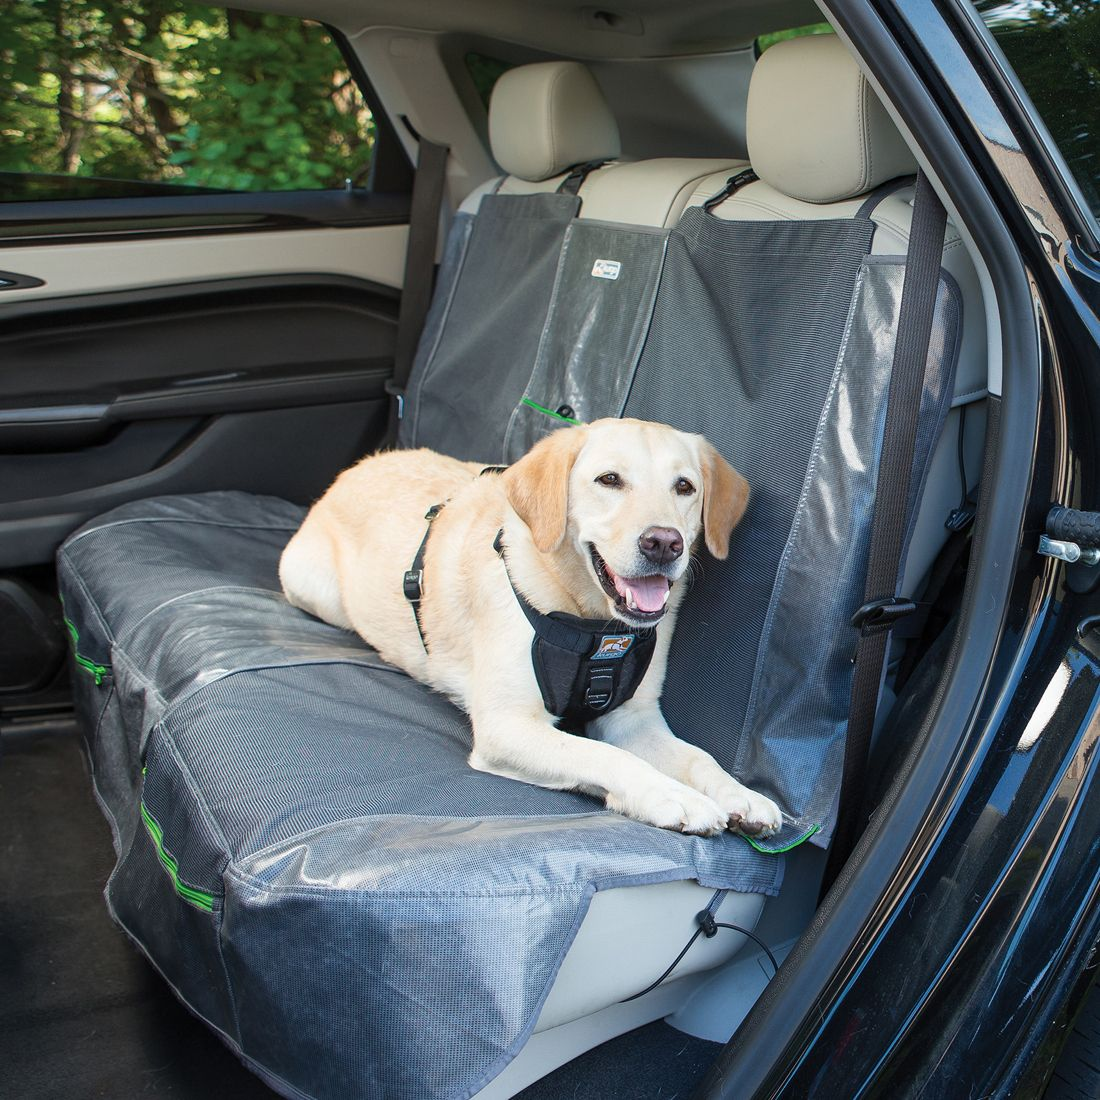 Kurgo Bench Seat Covers Are Waterproof Stain Resistant And Machine Washable They The Leading Dog Car Backed Up By A Lifetime Warranty